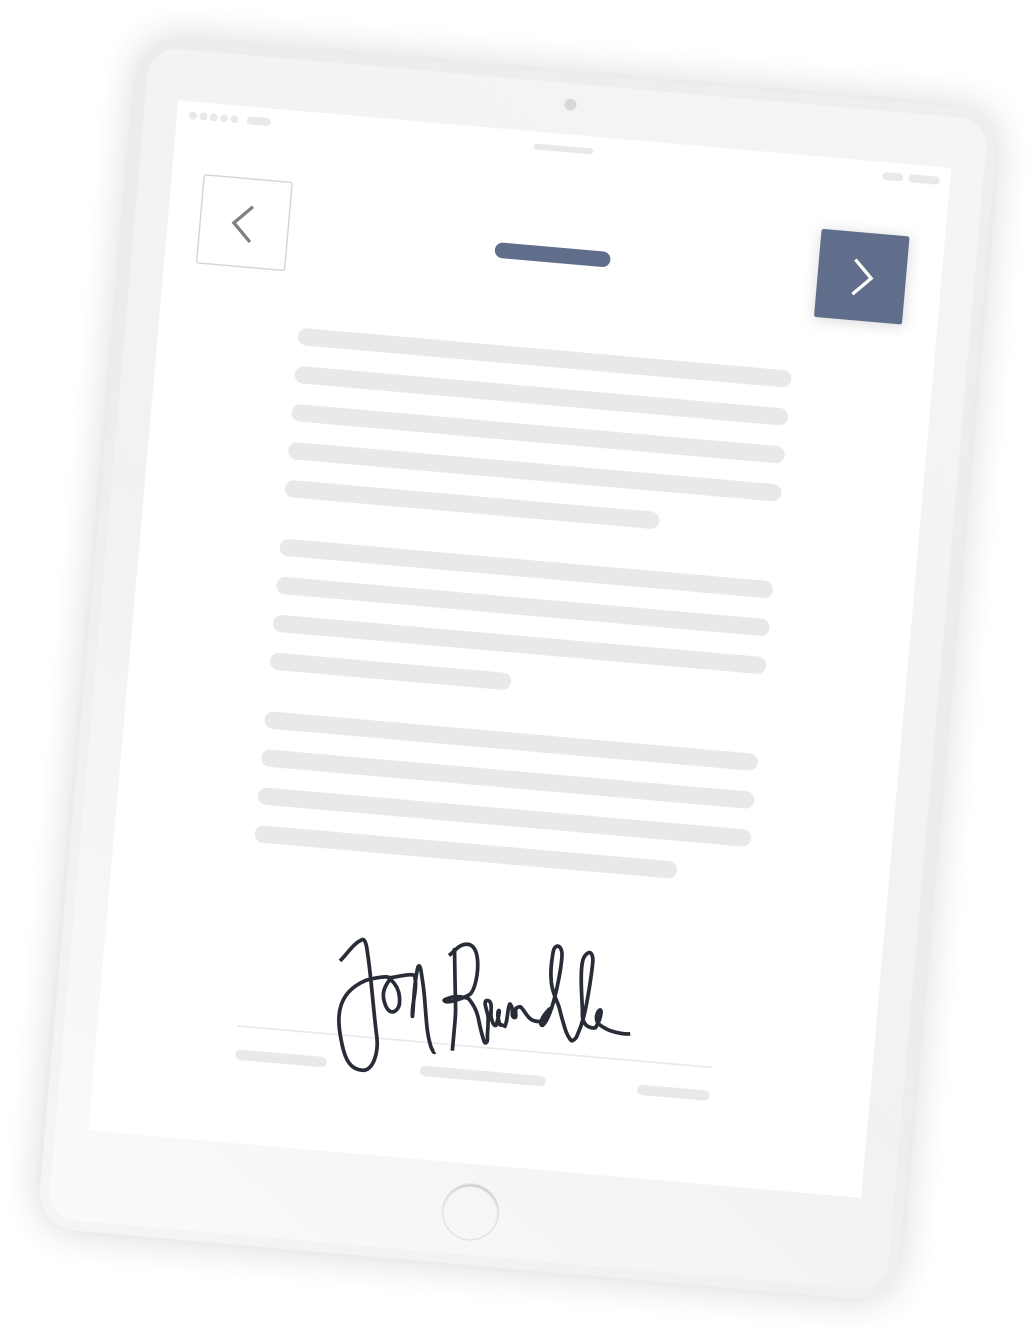 iPad showing document and visitor signature